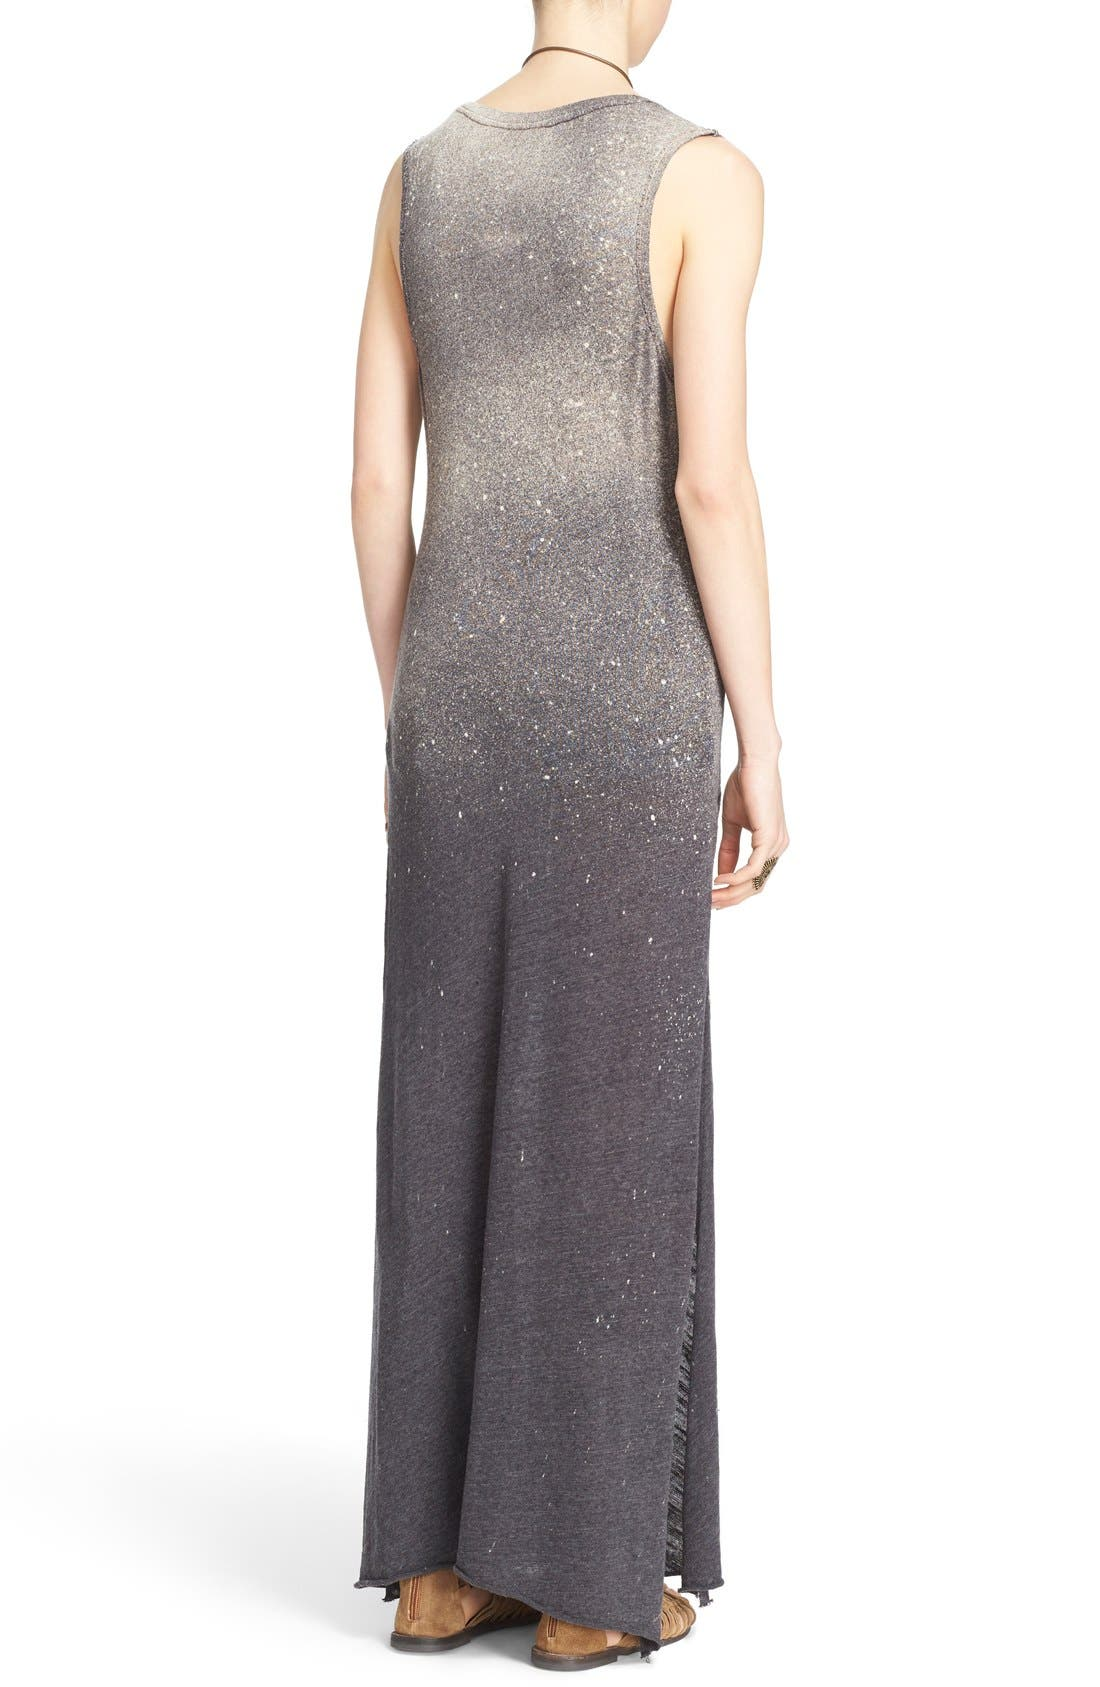 FREE PEOPLE,                             'Galaxy' Maxi Dress,                             Alternate thumbnail 5, color,                             001